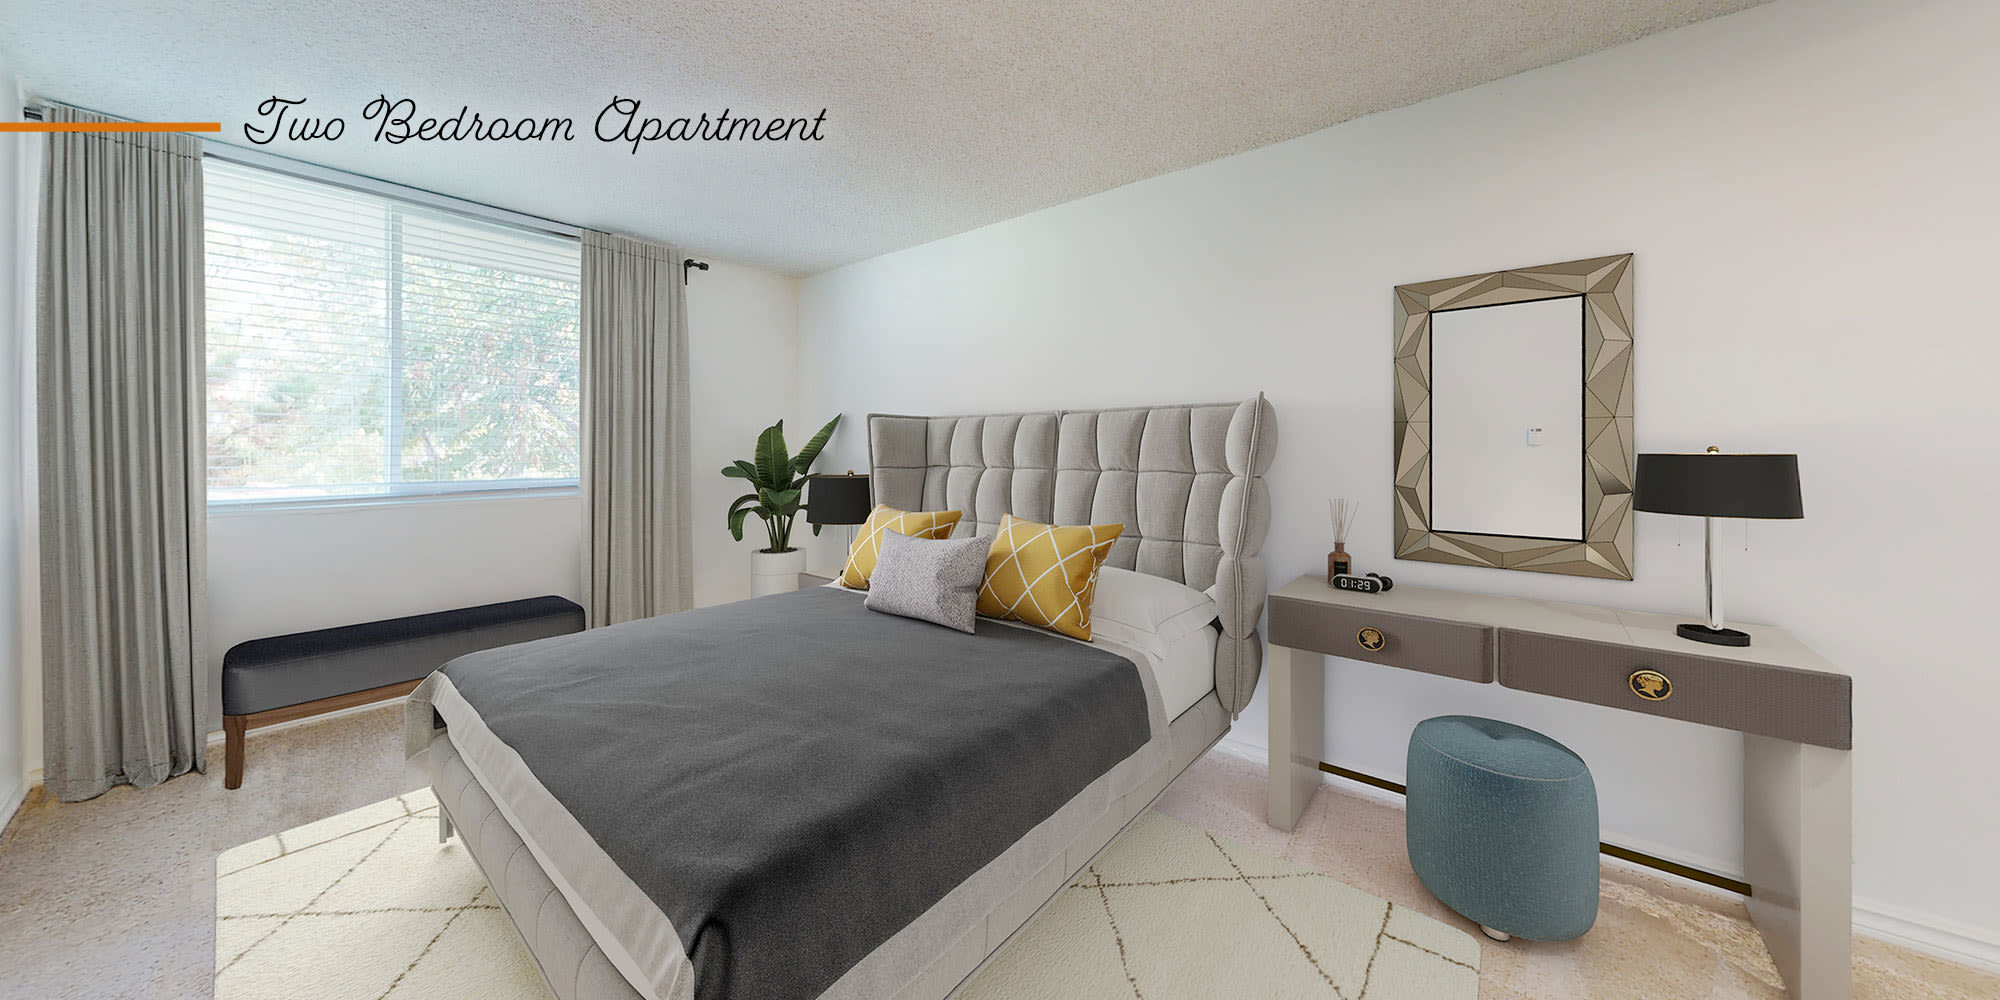 Bedroom in a two-bedroom apartment at Sunset Barrington Gardens in Los Angeles, California